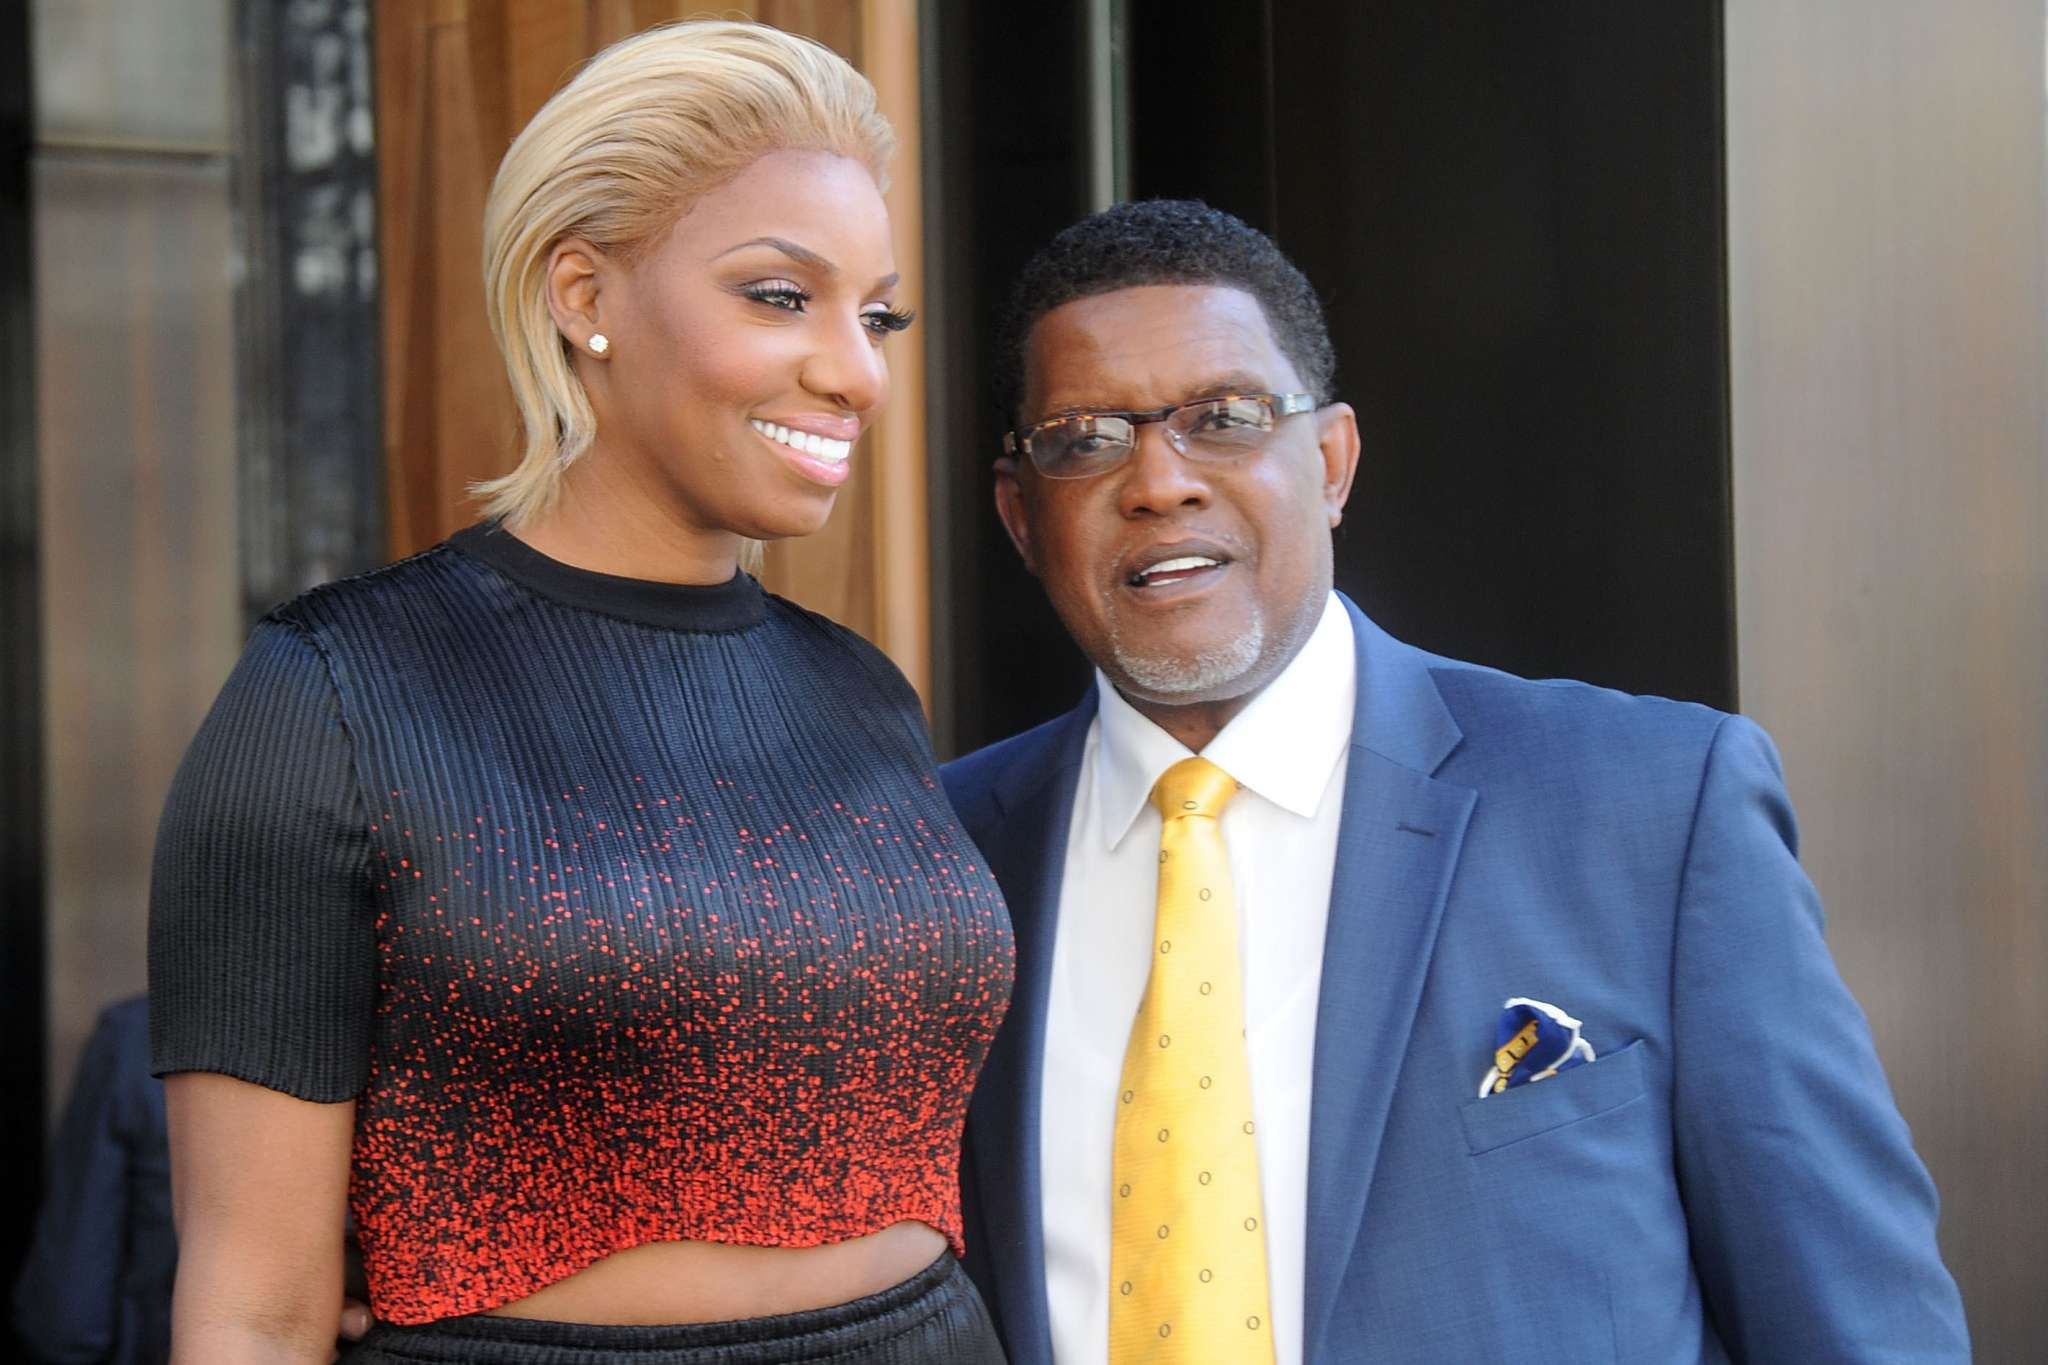 NeNe Leakes And Gregg Leakes Had An Old School Kitchen House Party Following The Great News That He Finished Chemo